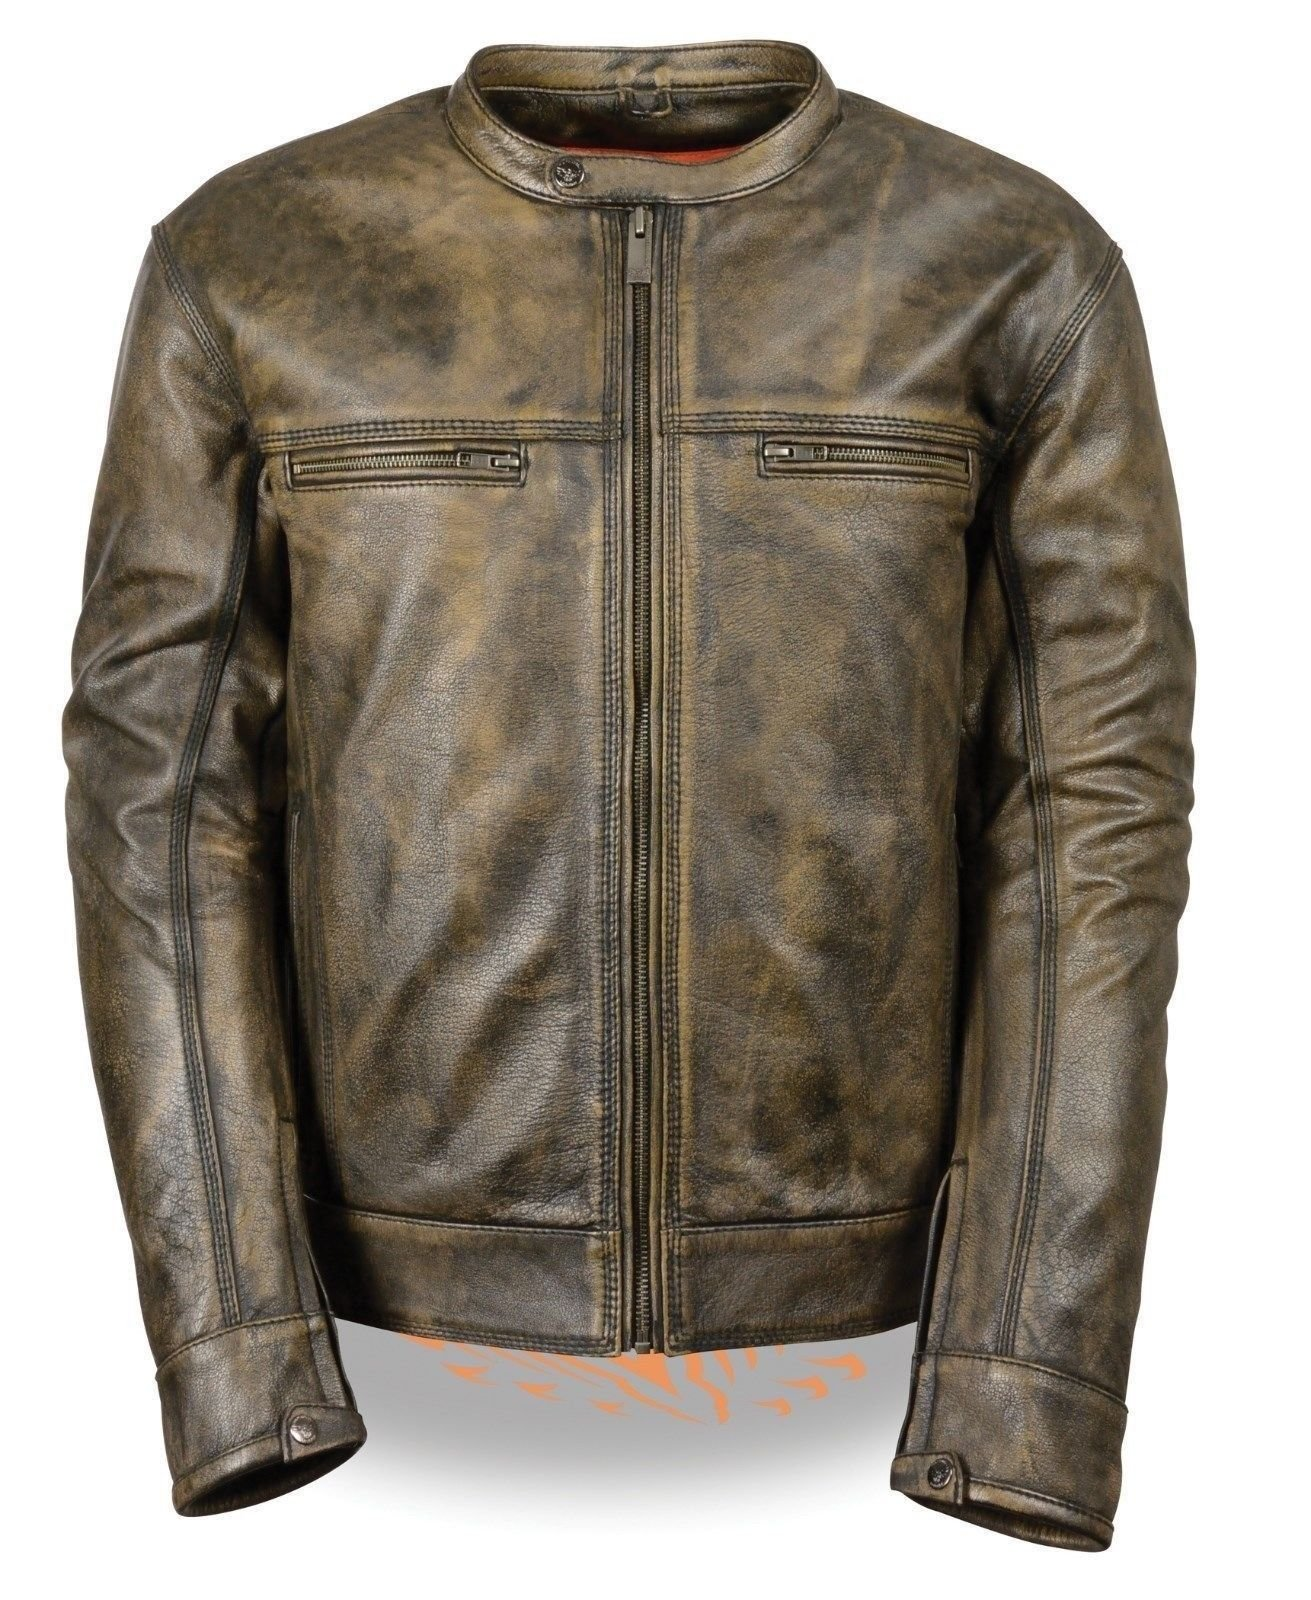 MEN'S MOTORCYCLE DISTRESSED BROWN SPORTY SCOOTER LEATHER JACKET W/2 GUN POCKETS (5XL Regular)